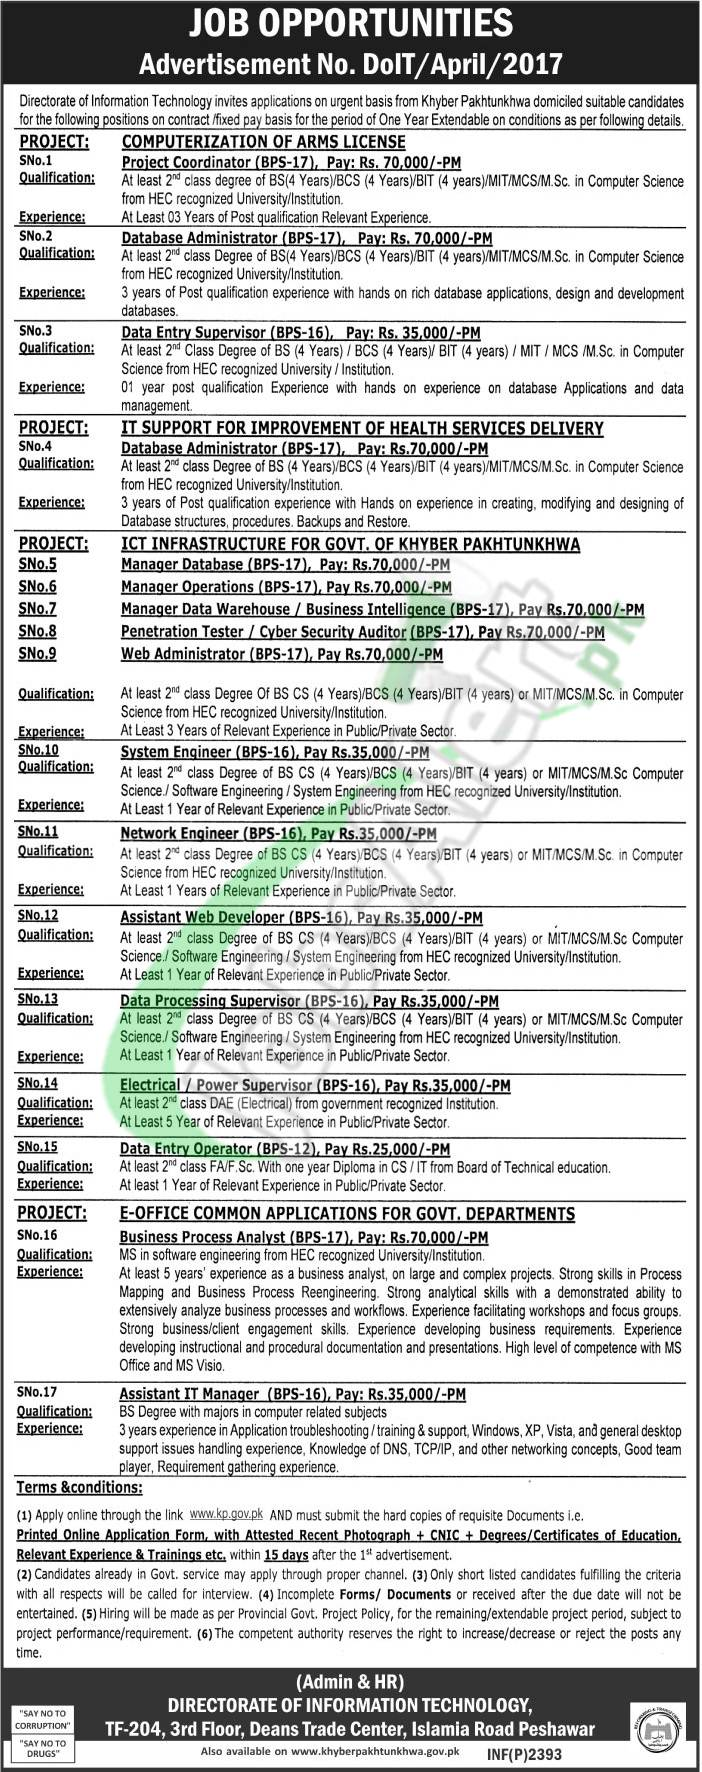 Directorate of Information Technology KPK Jobs